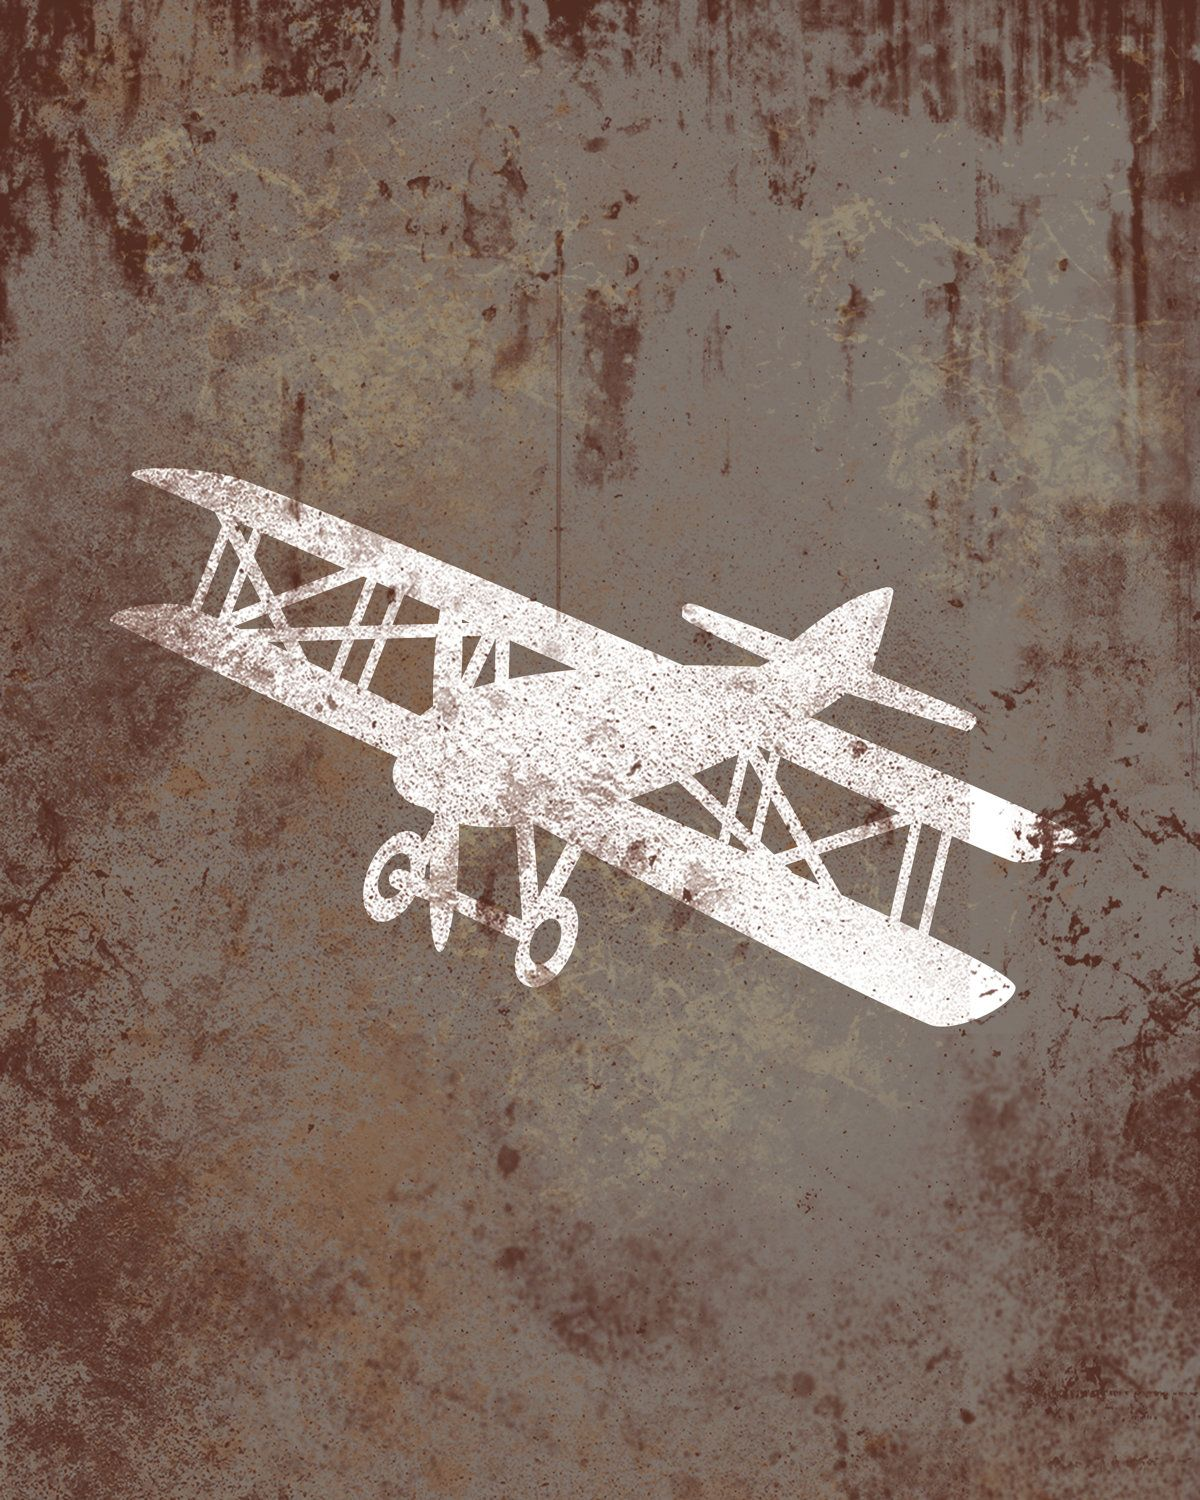 Vintage airplane aviation print series wall decor childs room nursery art also rh pinterest